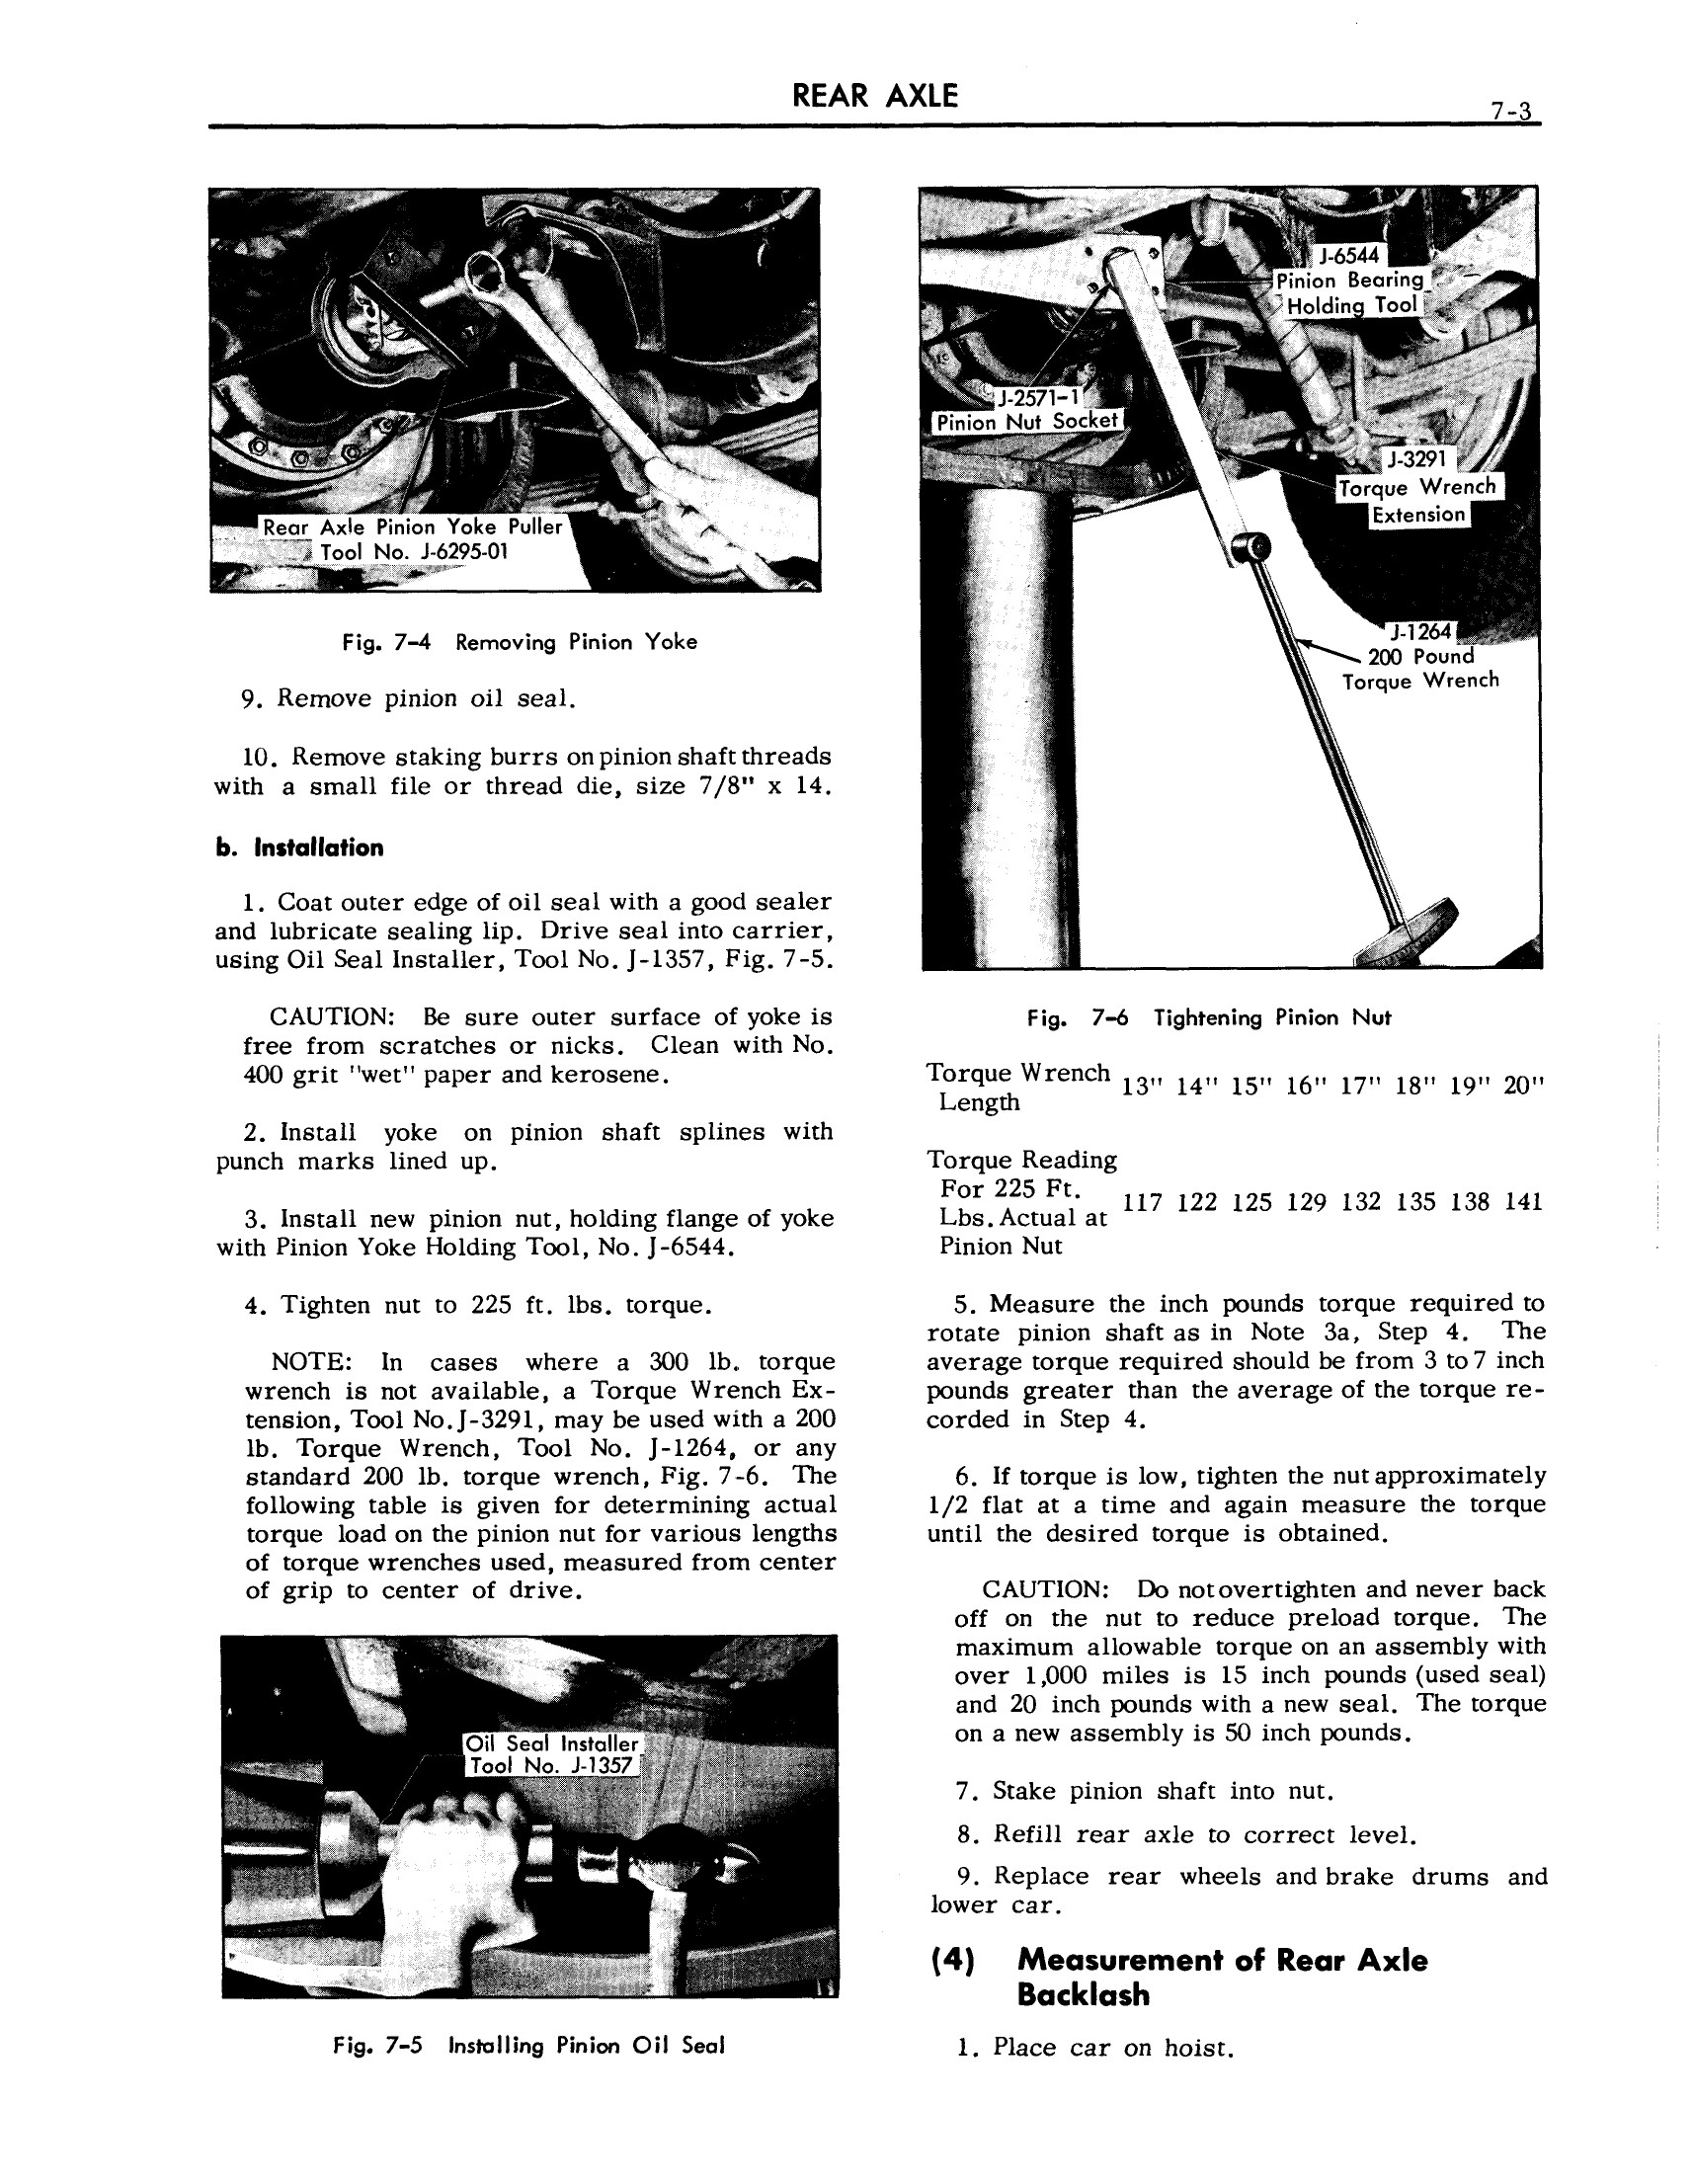 1957 Cadillac Shop Manual- Rear Axle Page 3 of 10